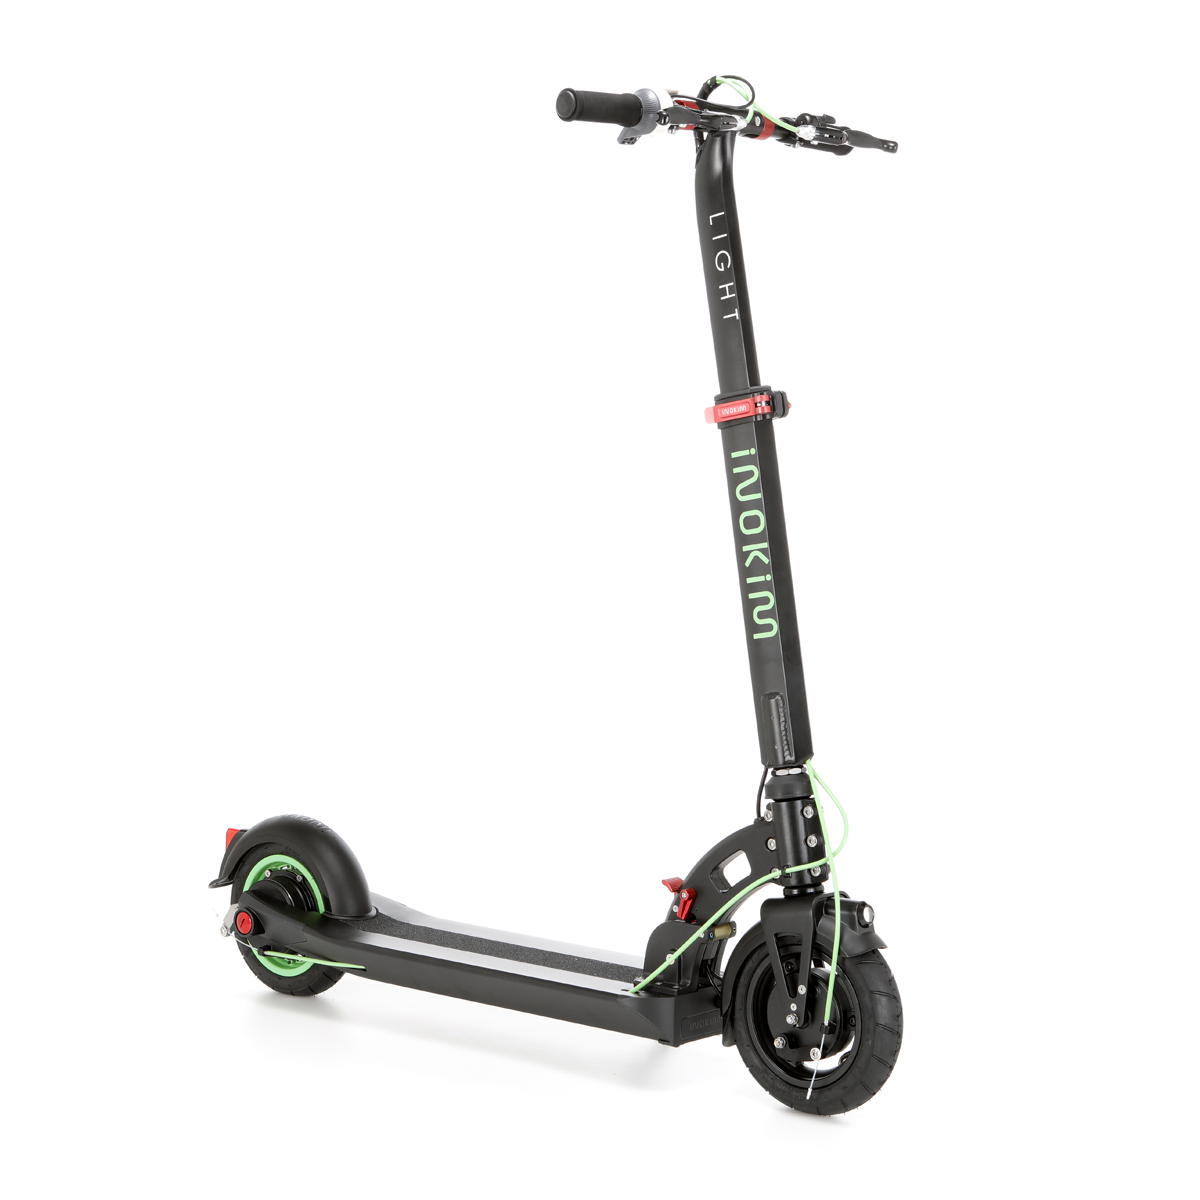 Inokim Light 2 Electric Scooter Review